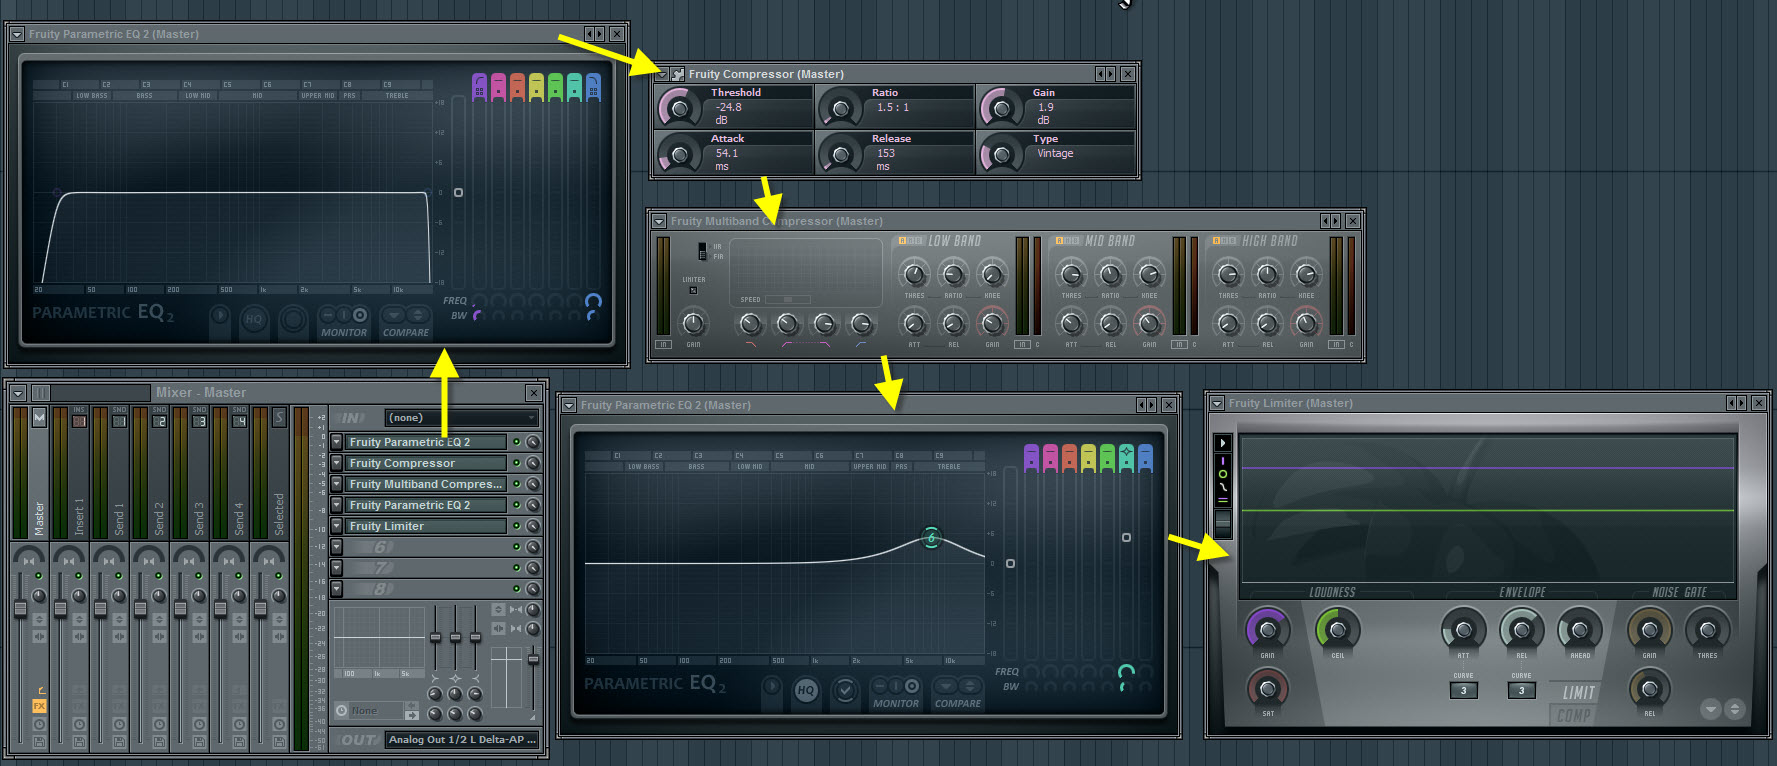 How To Master A Song In FL Studio